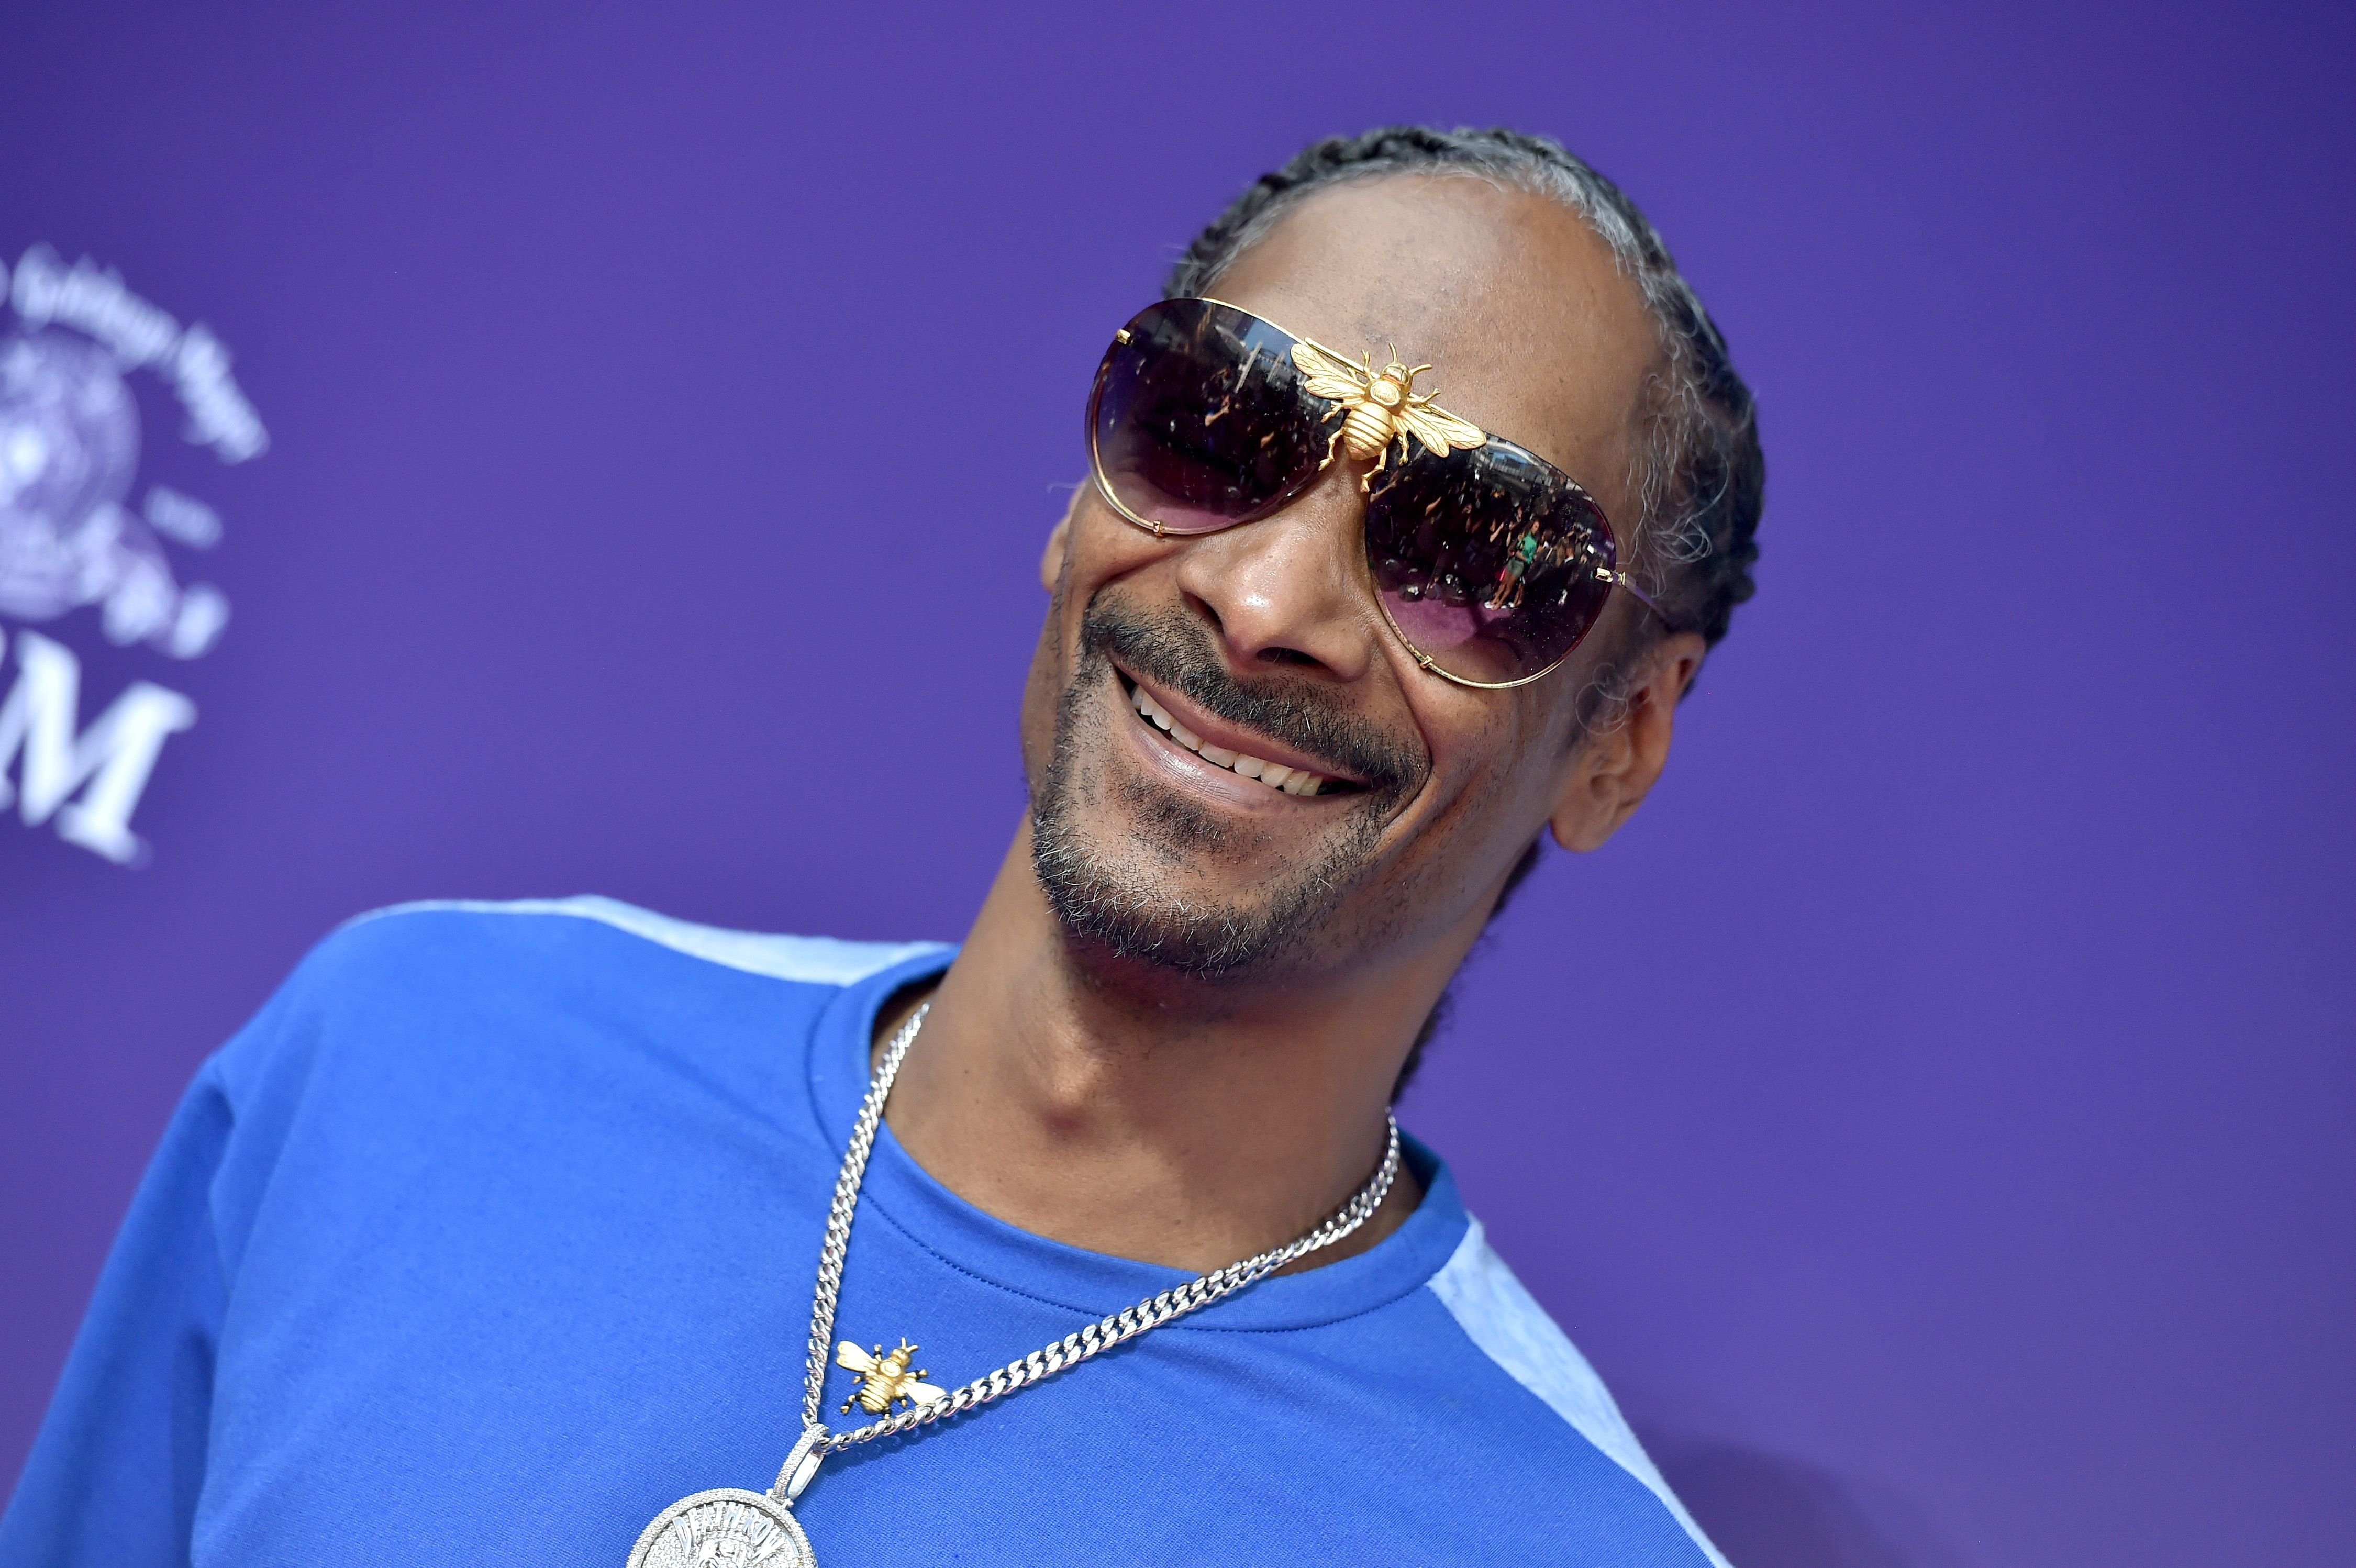 """Snoop Dogg during the Premiere of MGM's """"The Addams Family"""" at Westfield Century City AMC on October 06, 2019 in Los Angeles, California. 